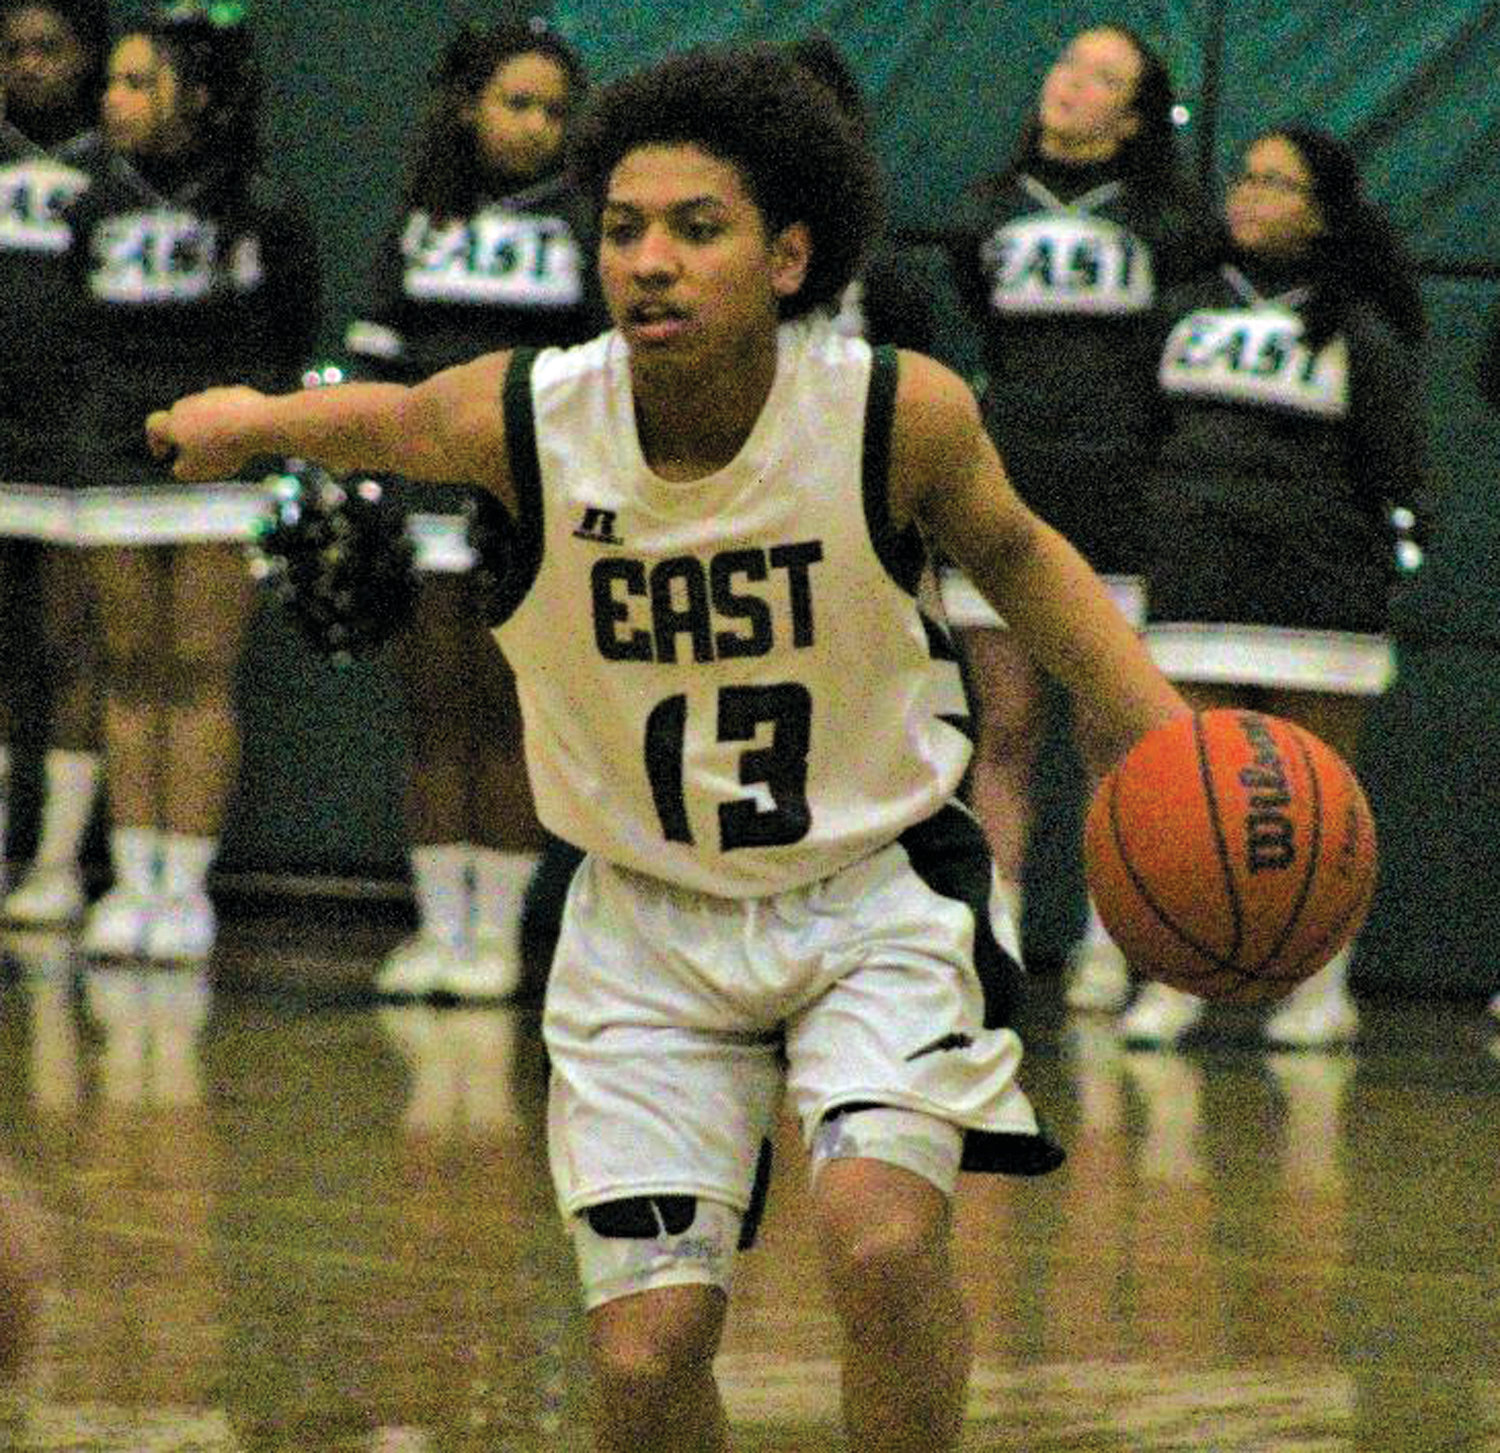 UP THE COURT: Cranston East's Brayam Murakawa brings the ball up the court.